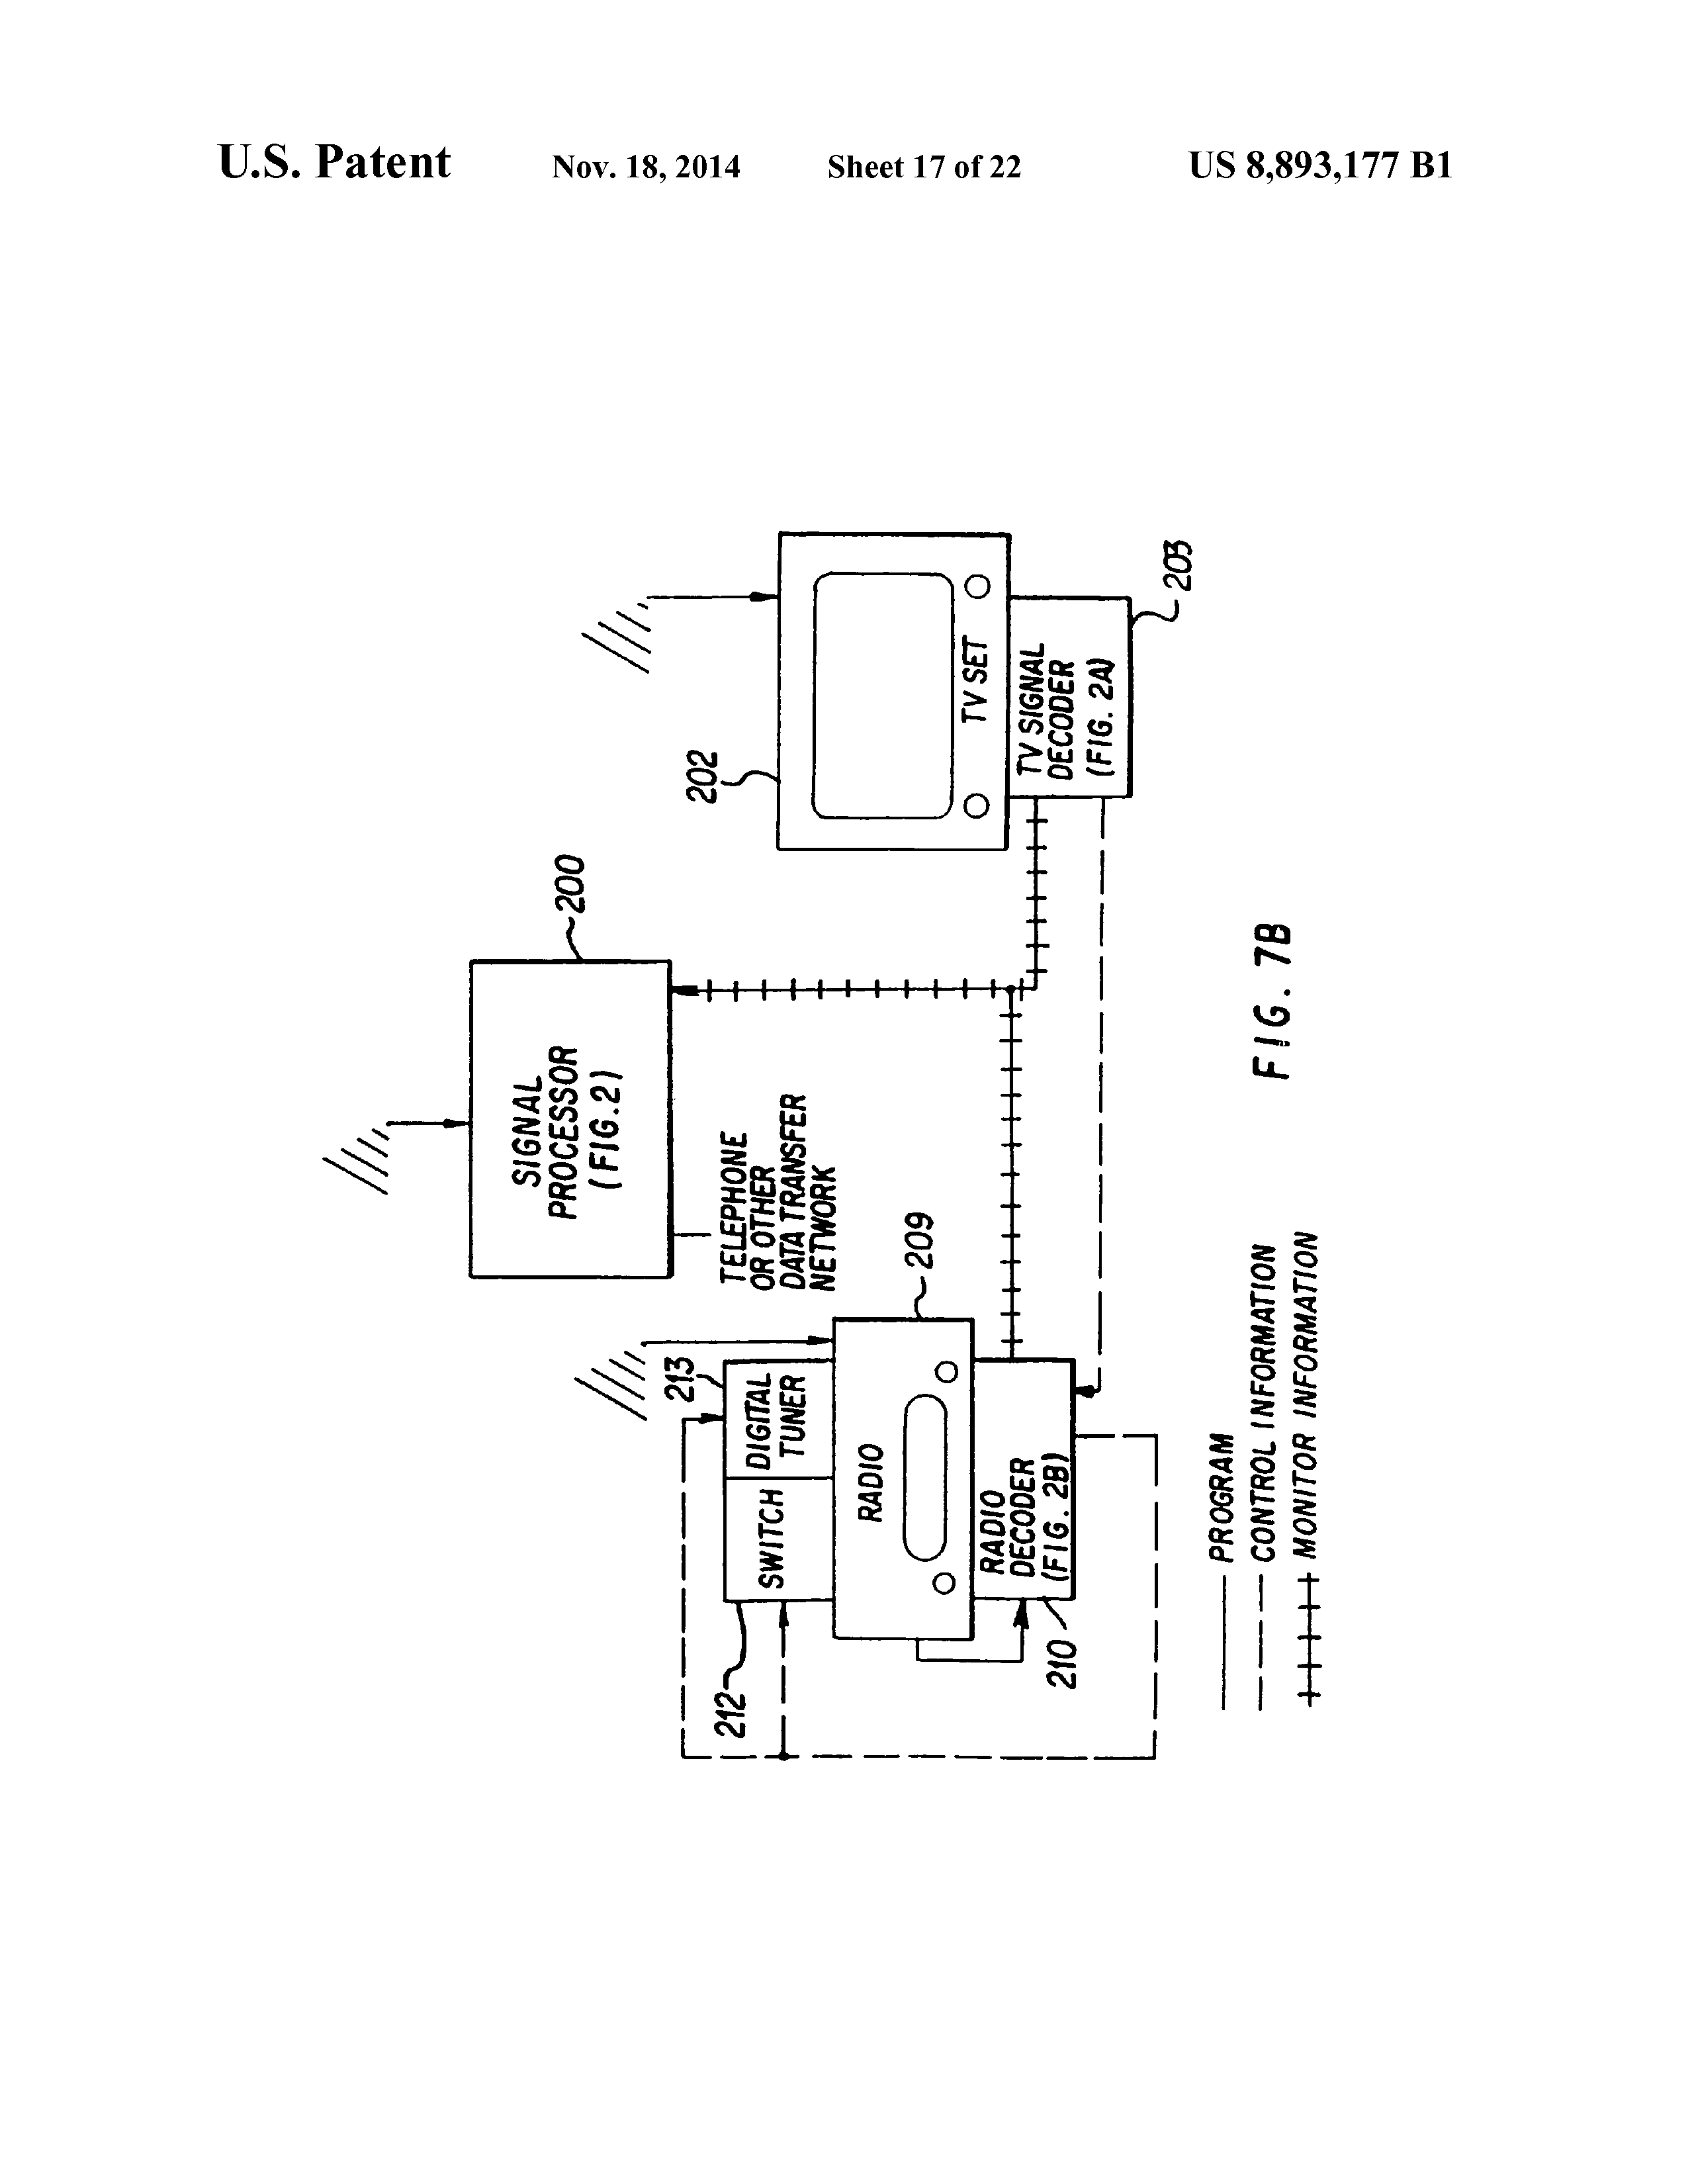 US8893177B1 - Signal processing apparatus and methods